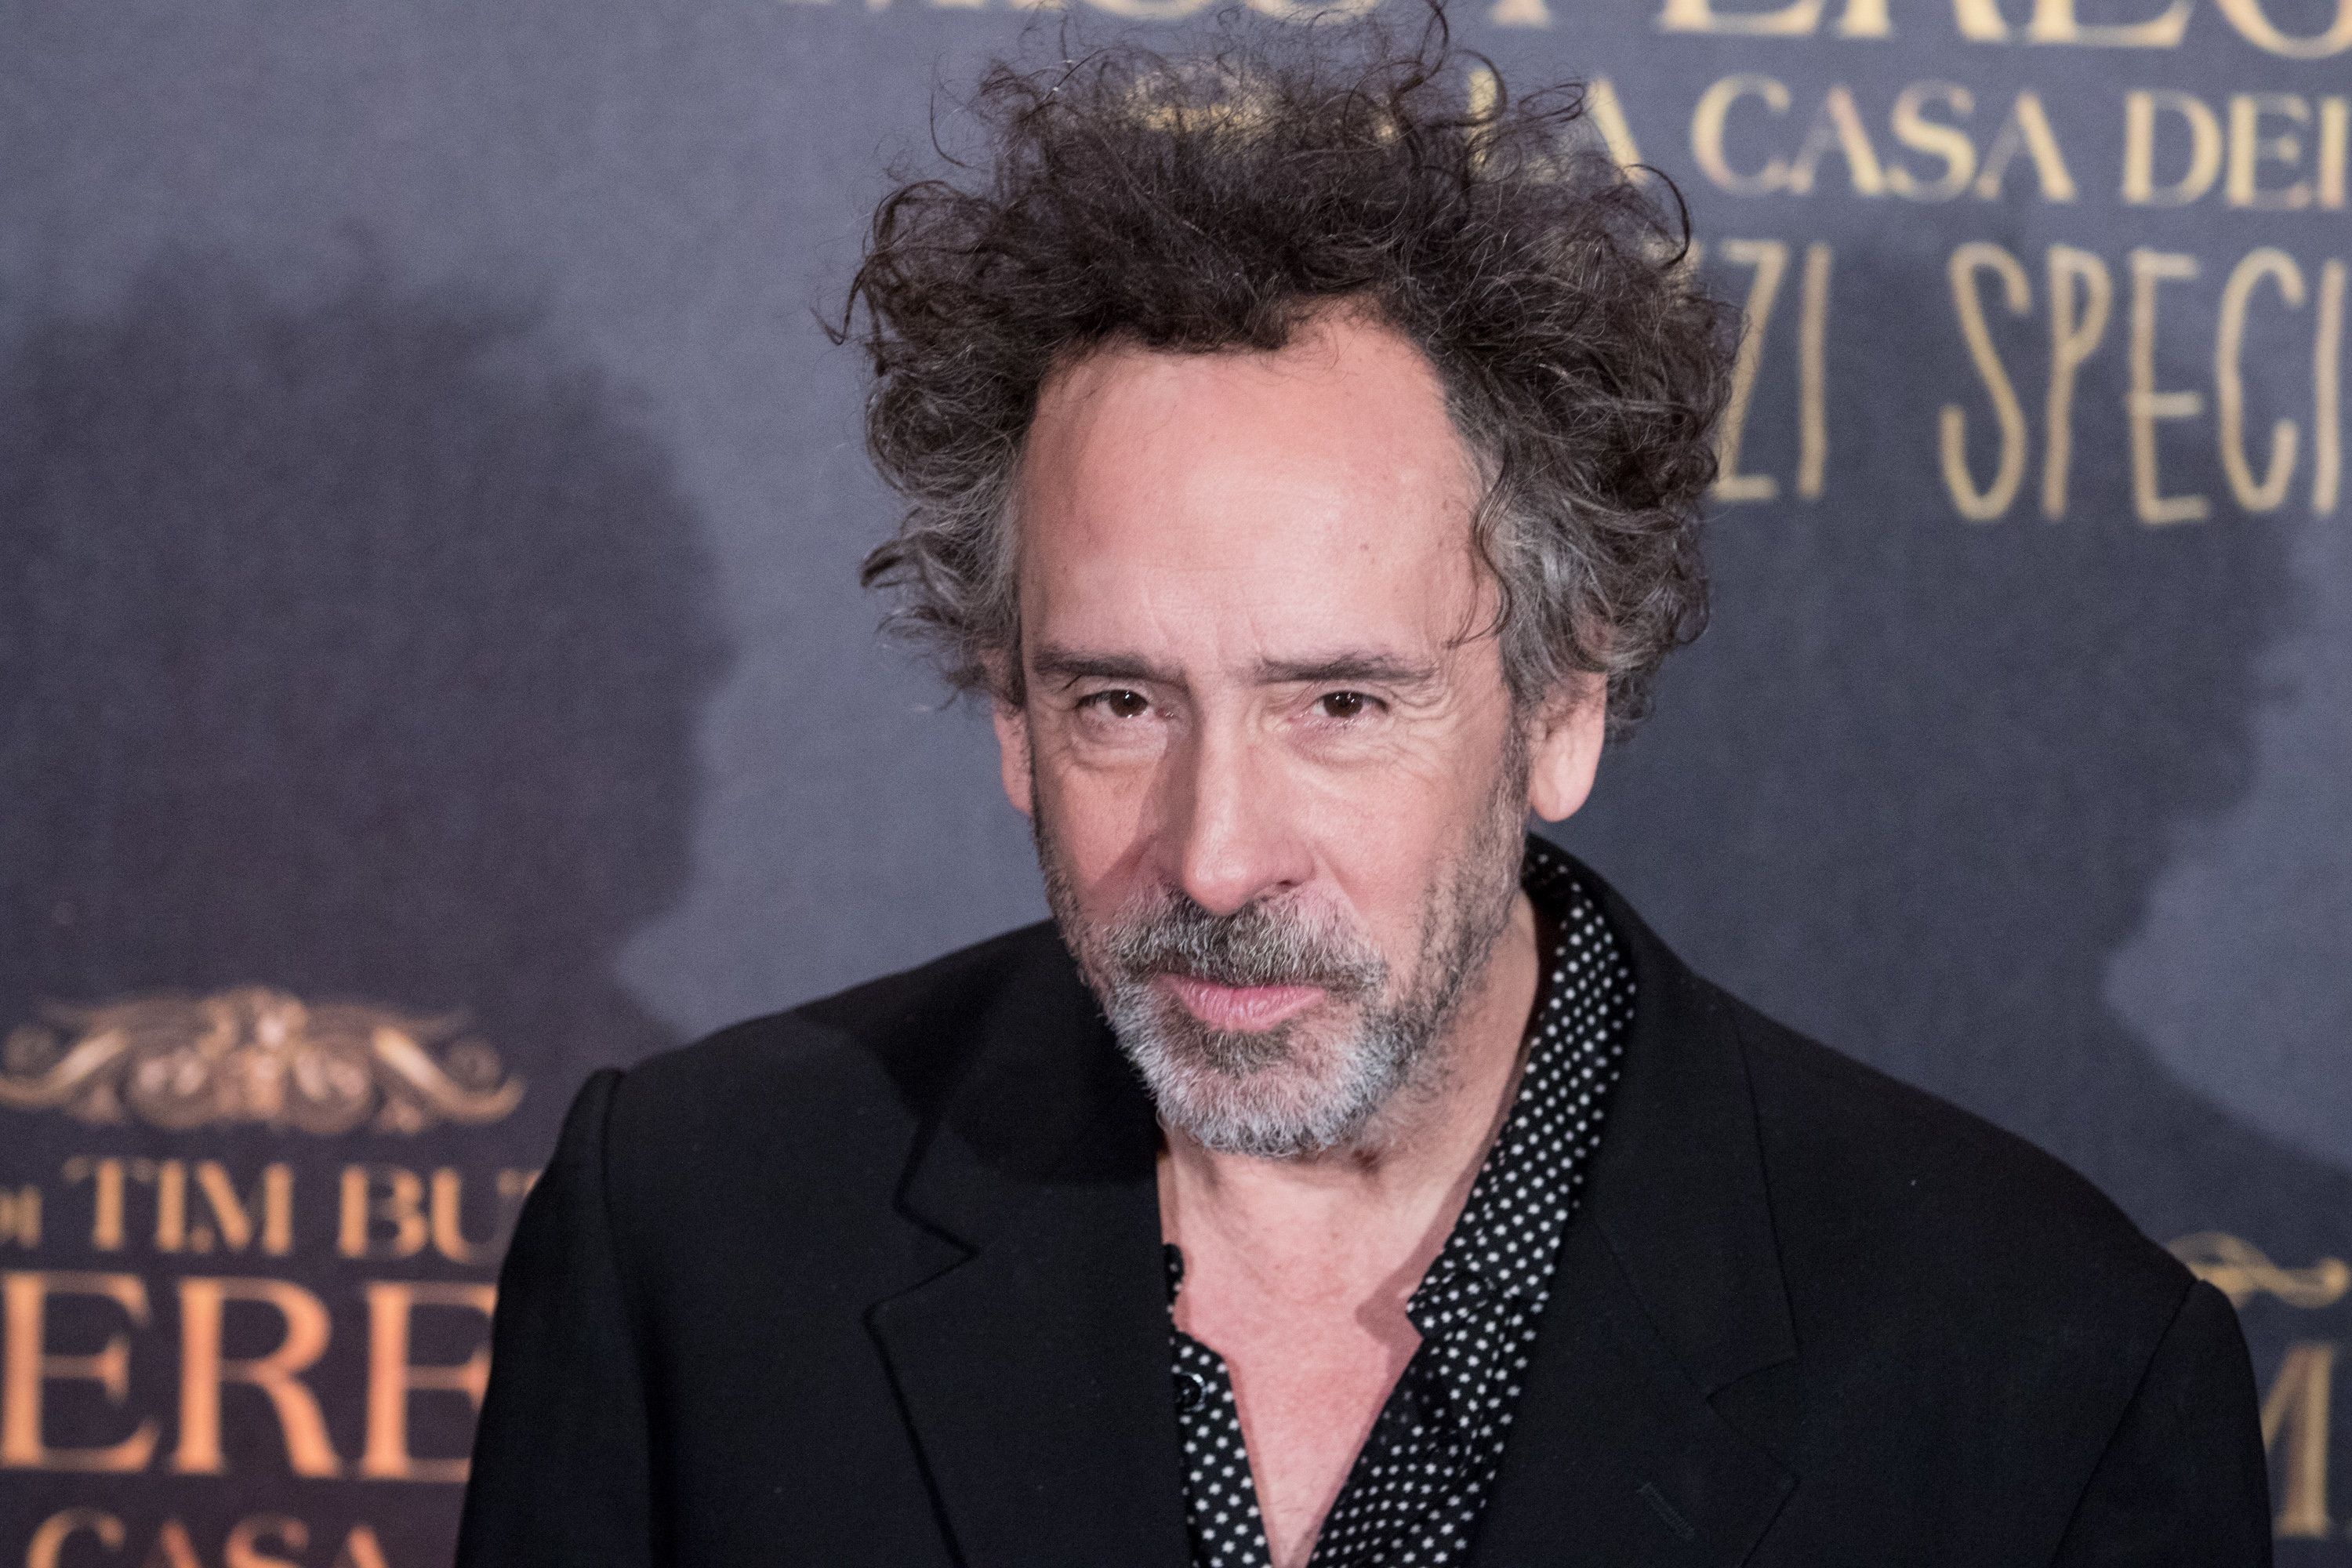 The director Tim Burton attends the italian premiere of Miss Peregrine movie at the Auditorium conciliazione in Rome, on December 5, 2016. (Photo by Luca Carlino/NurPhoto via Getty Images)